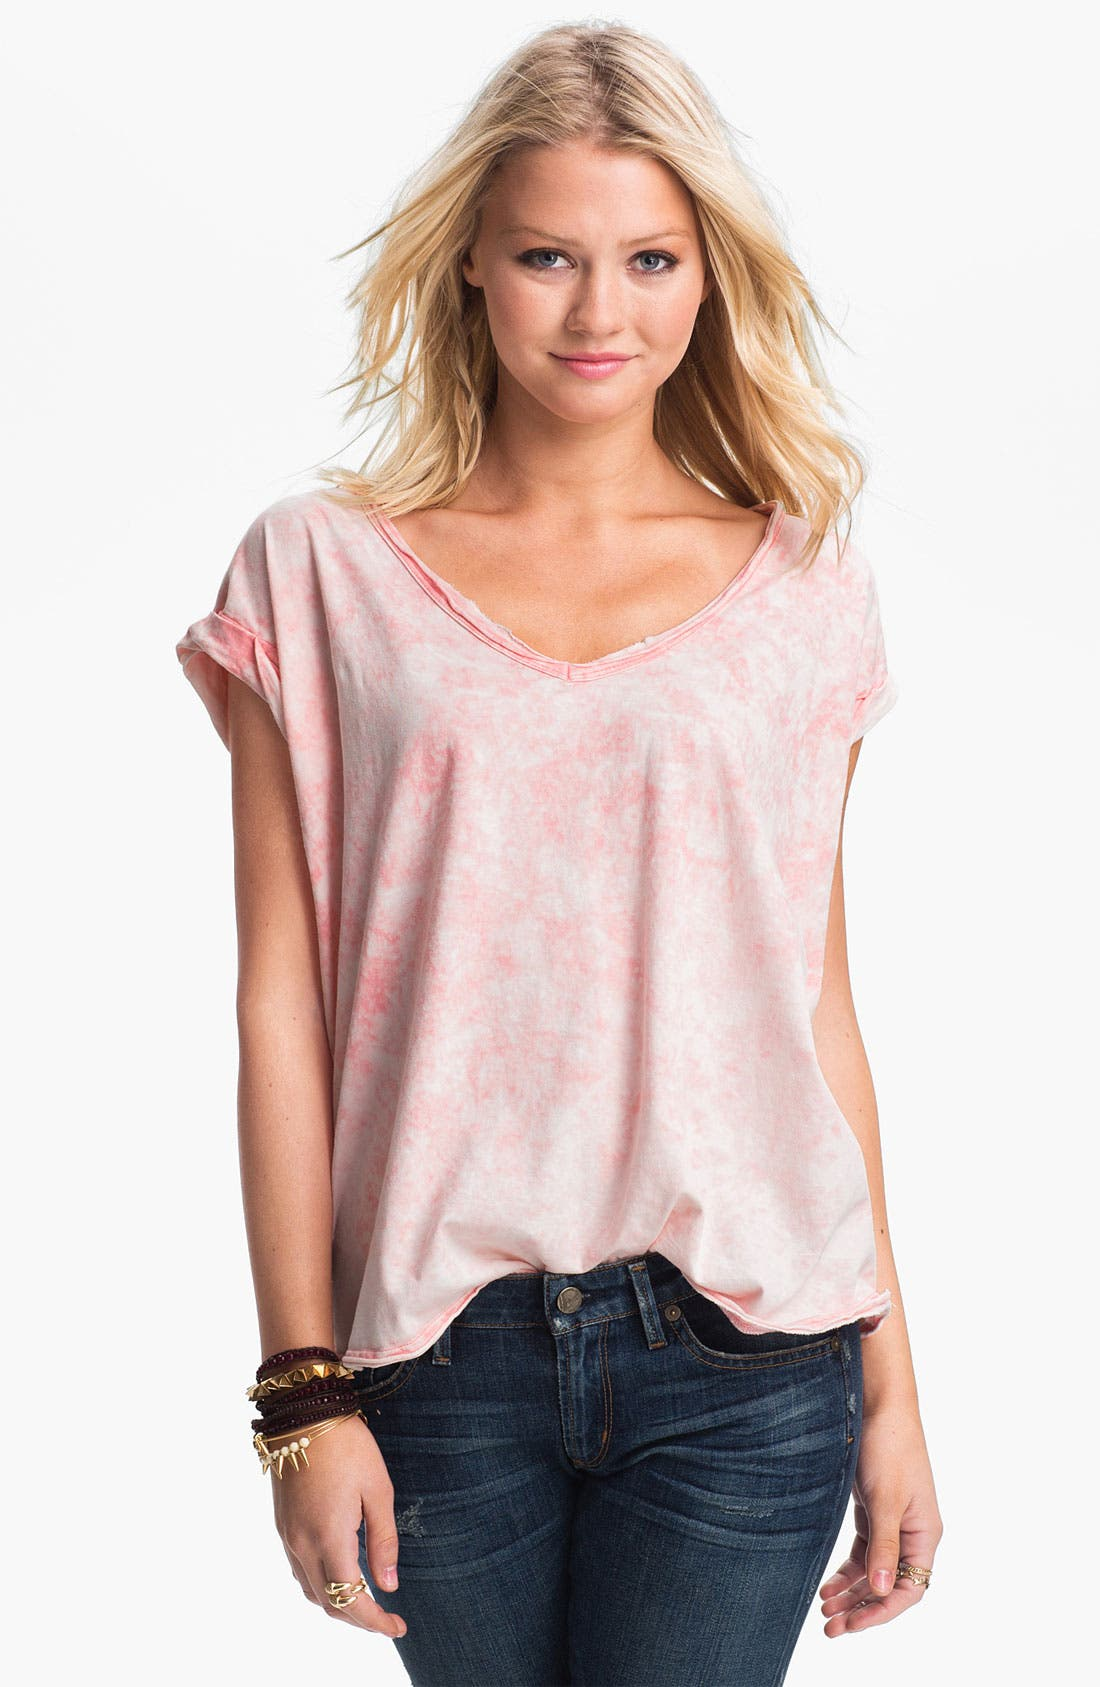 Alternate Image 1 Selected - Free People 'Keep Me' Oversize Acid Wash Tee